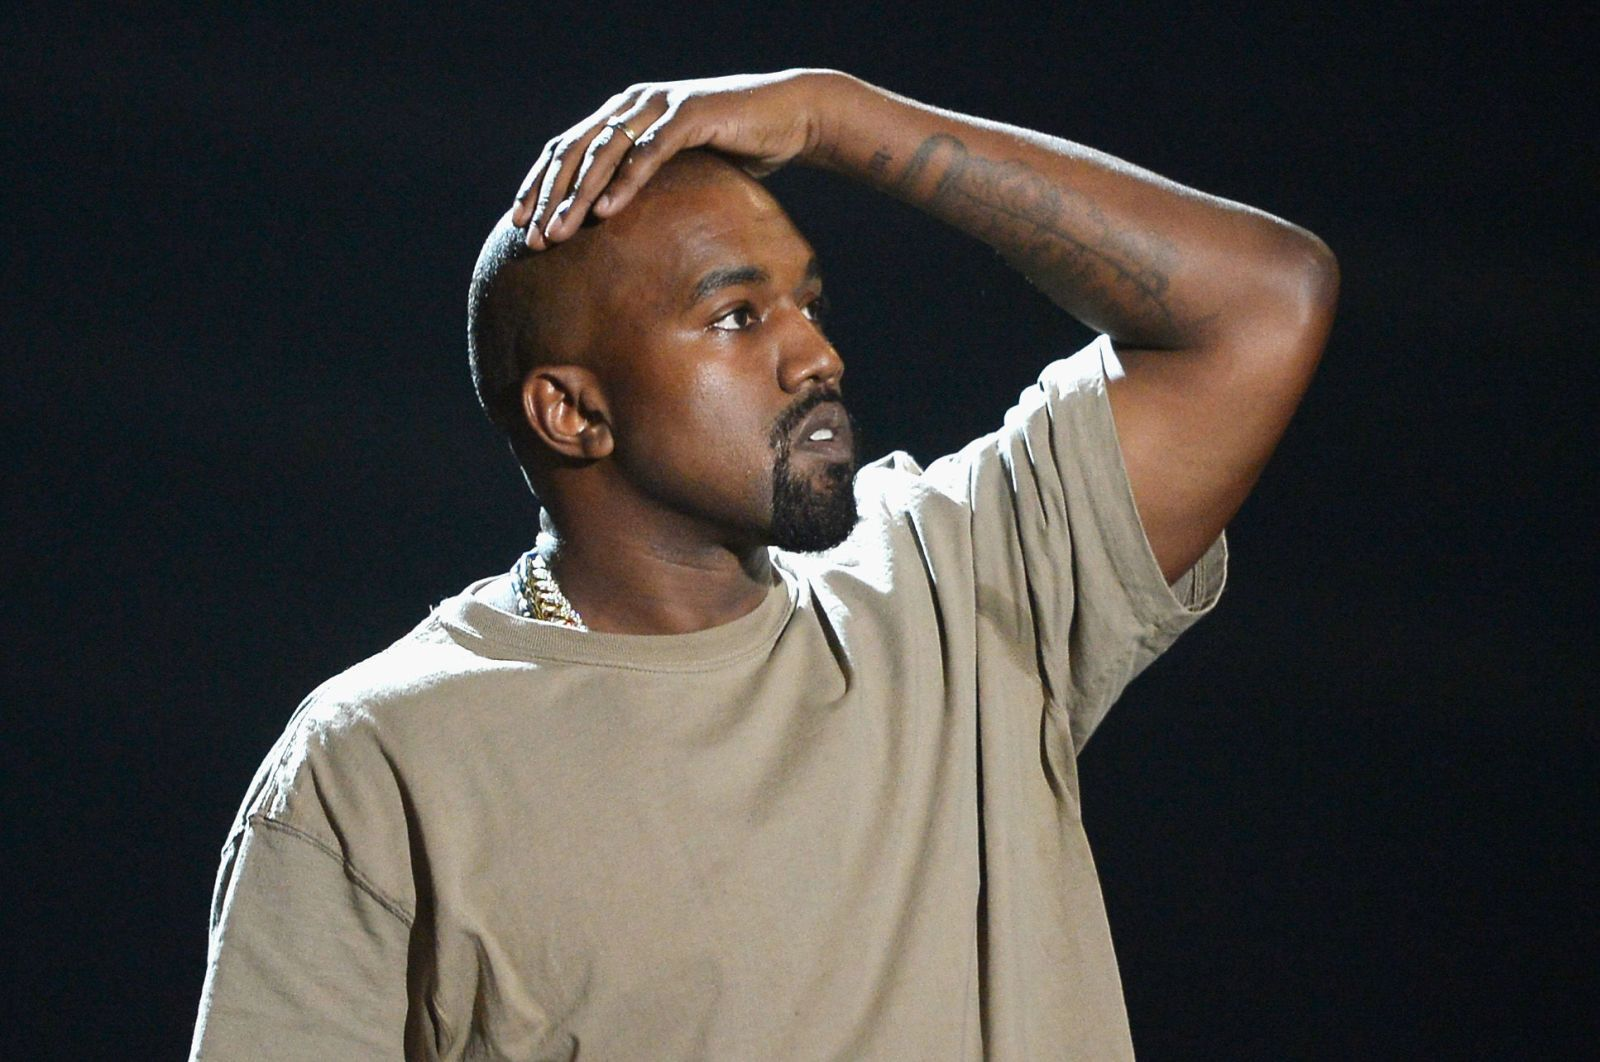 Kanye West Just Killed Deadmau5 in a Hilarious Twitter Rant